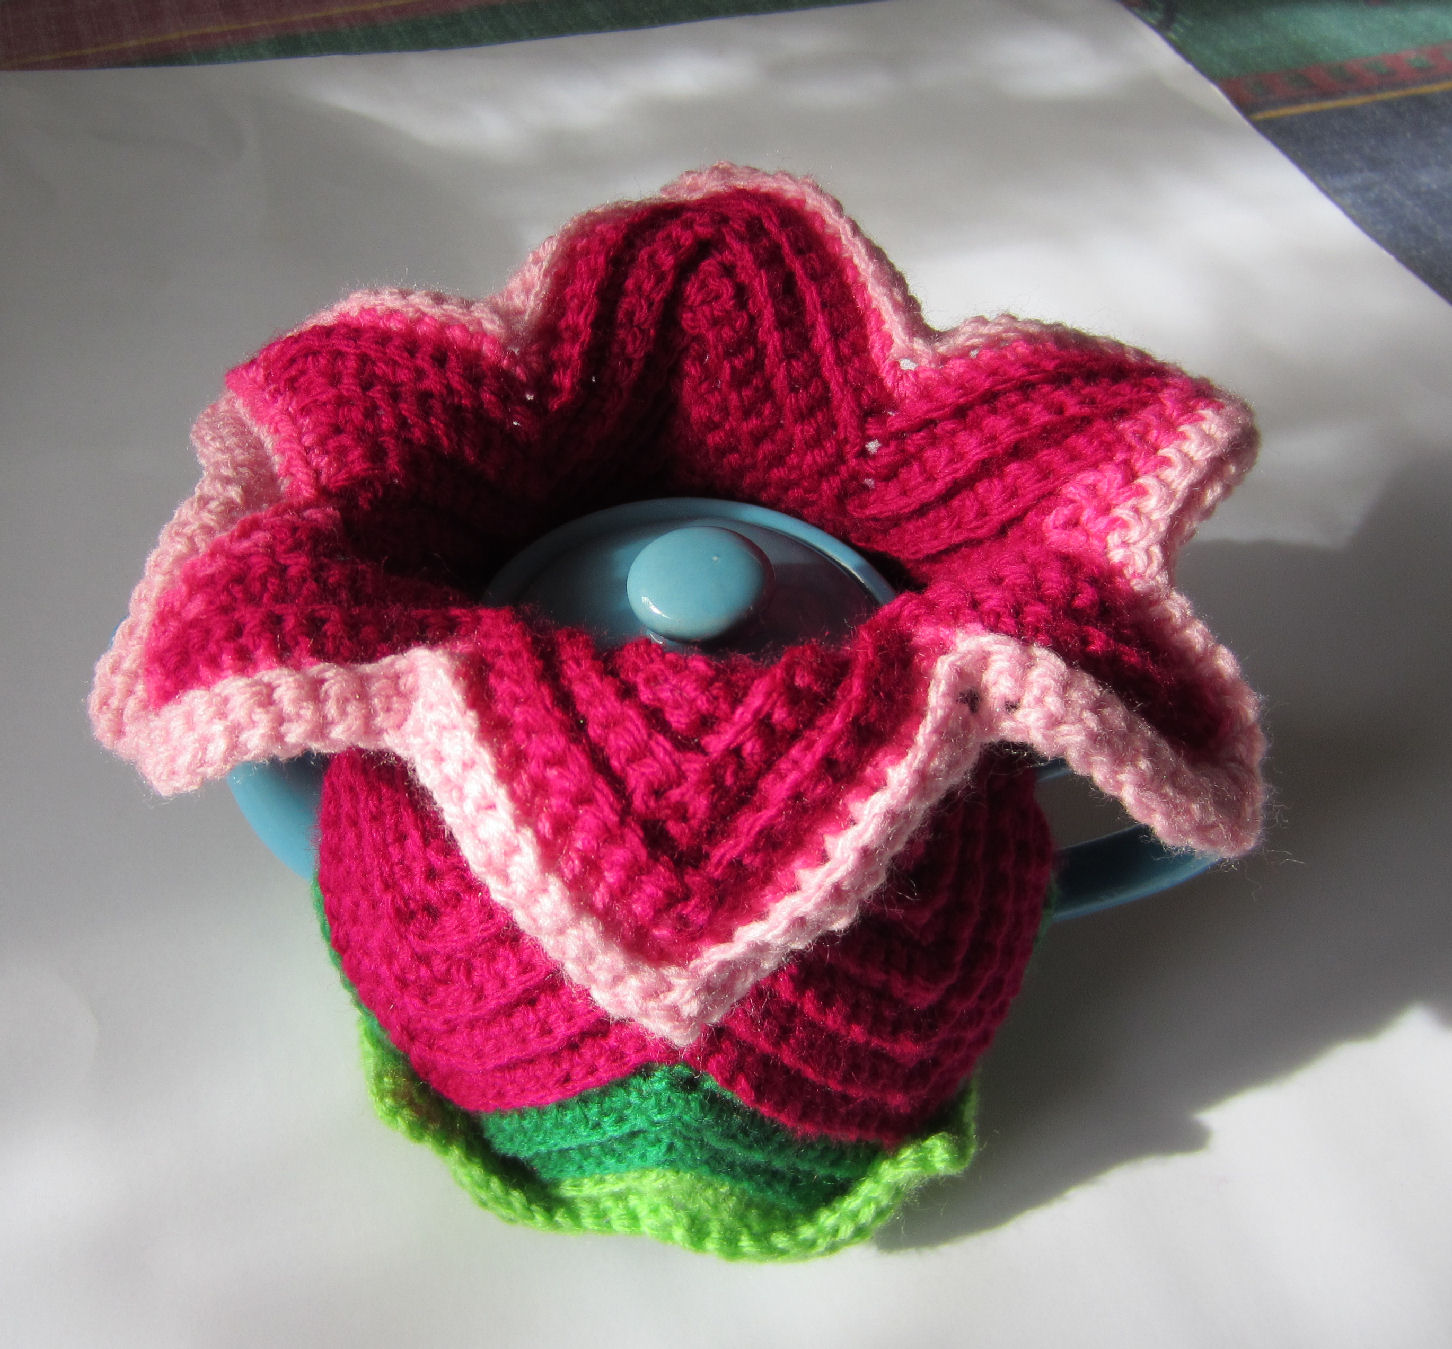 Free Easy Crochet Patterns For Tea Cosy Legitefo For